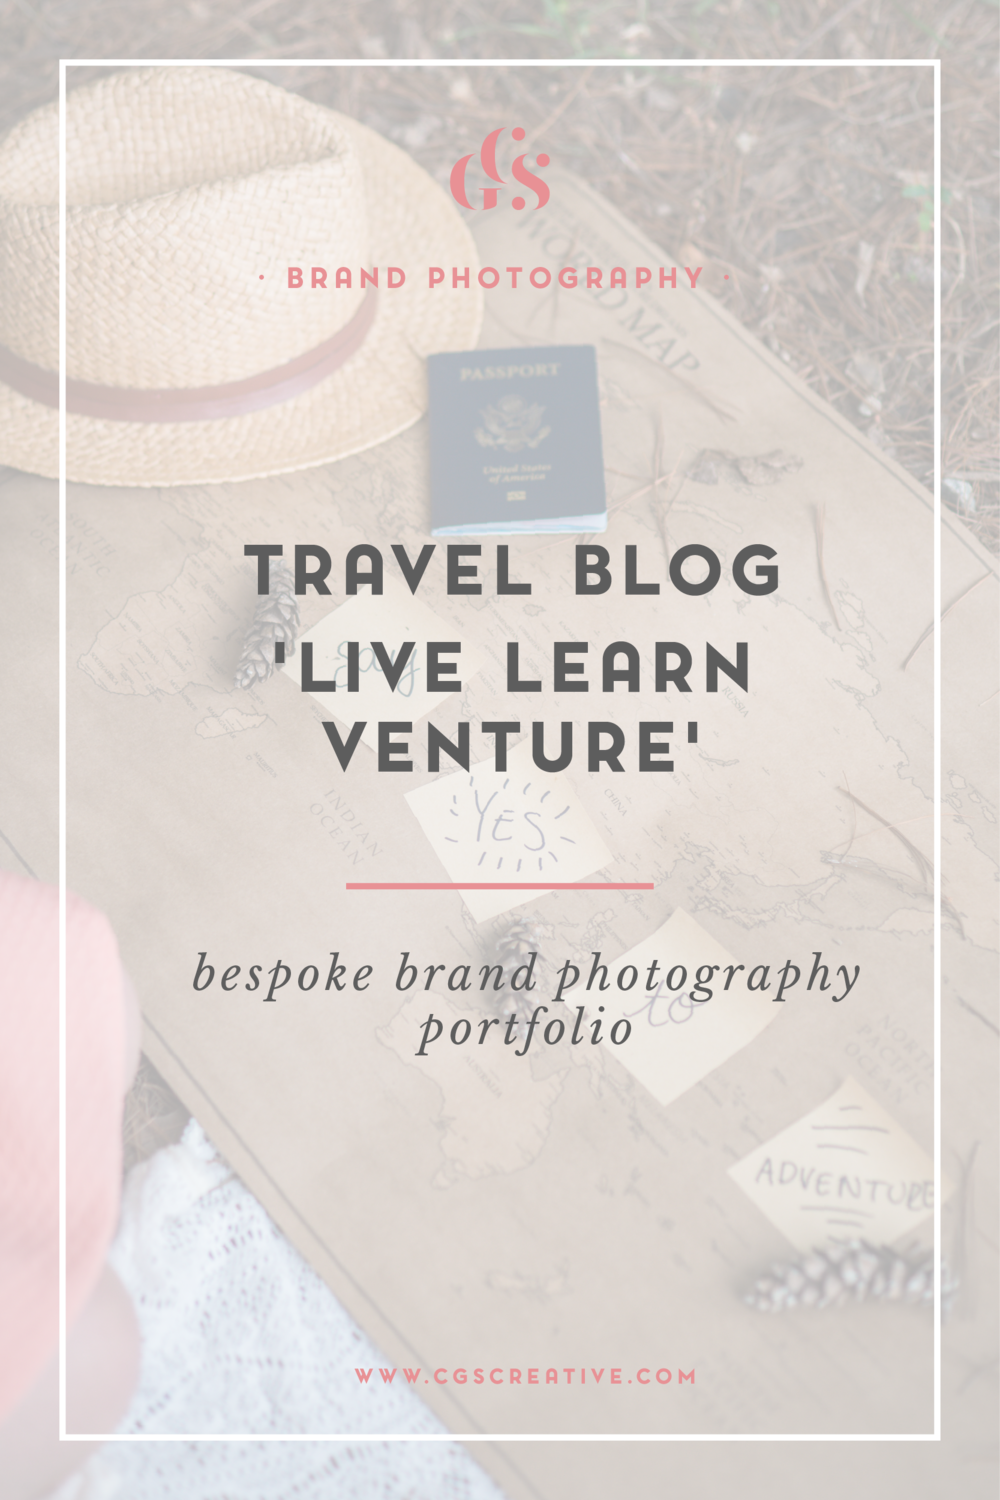 Live Learn Venture Travel Blog Brand Photography by CGScreative-03.png